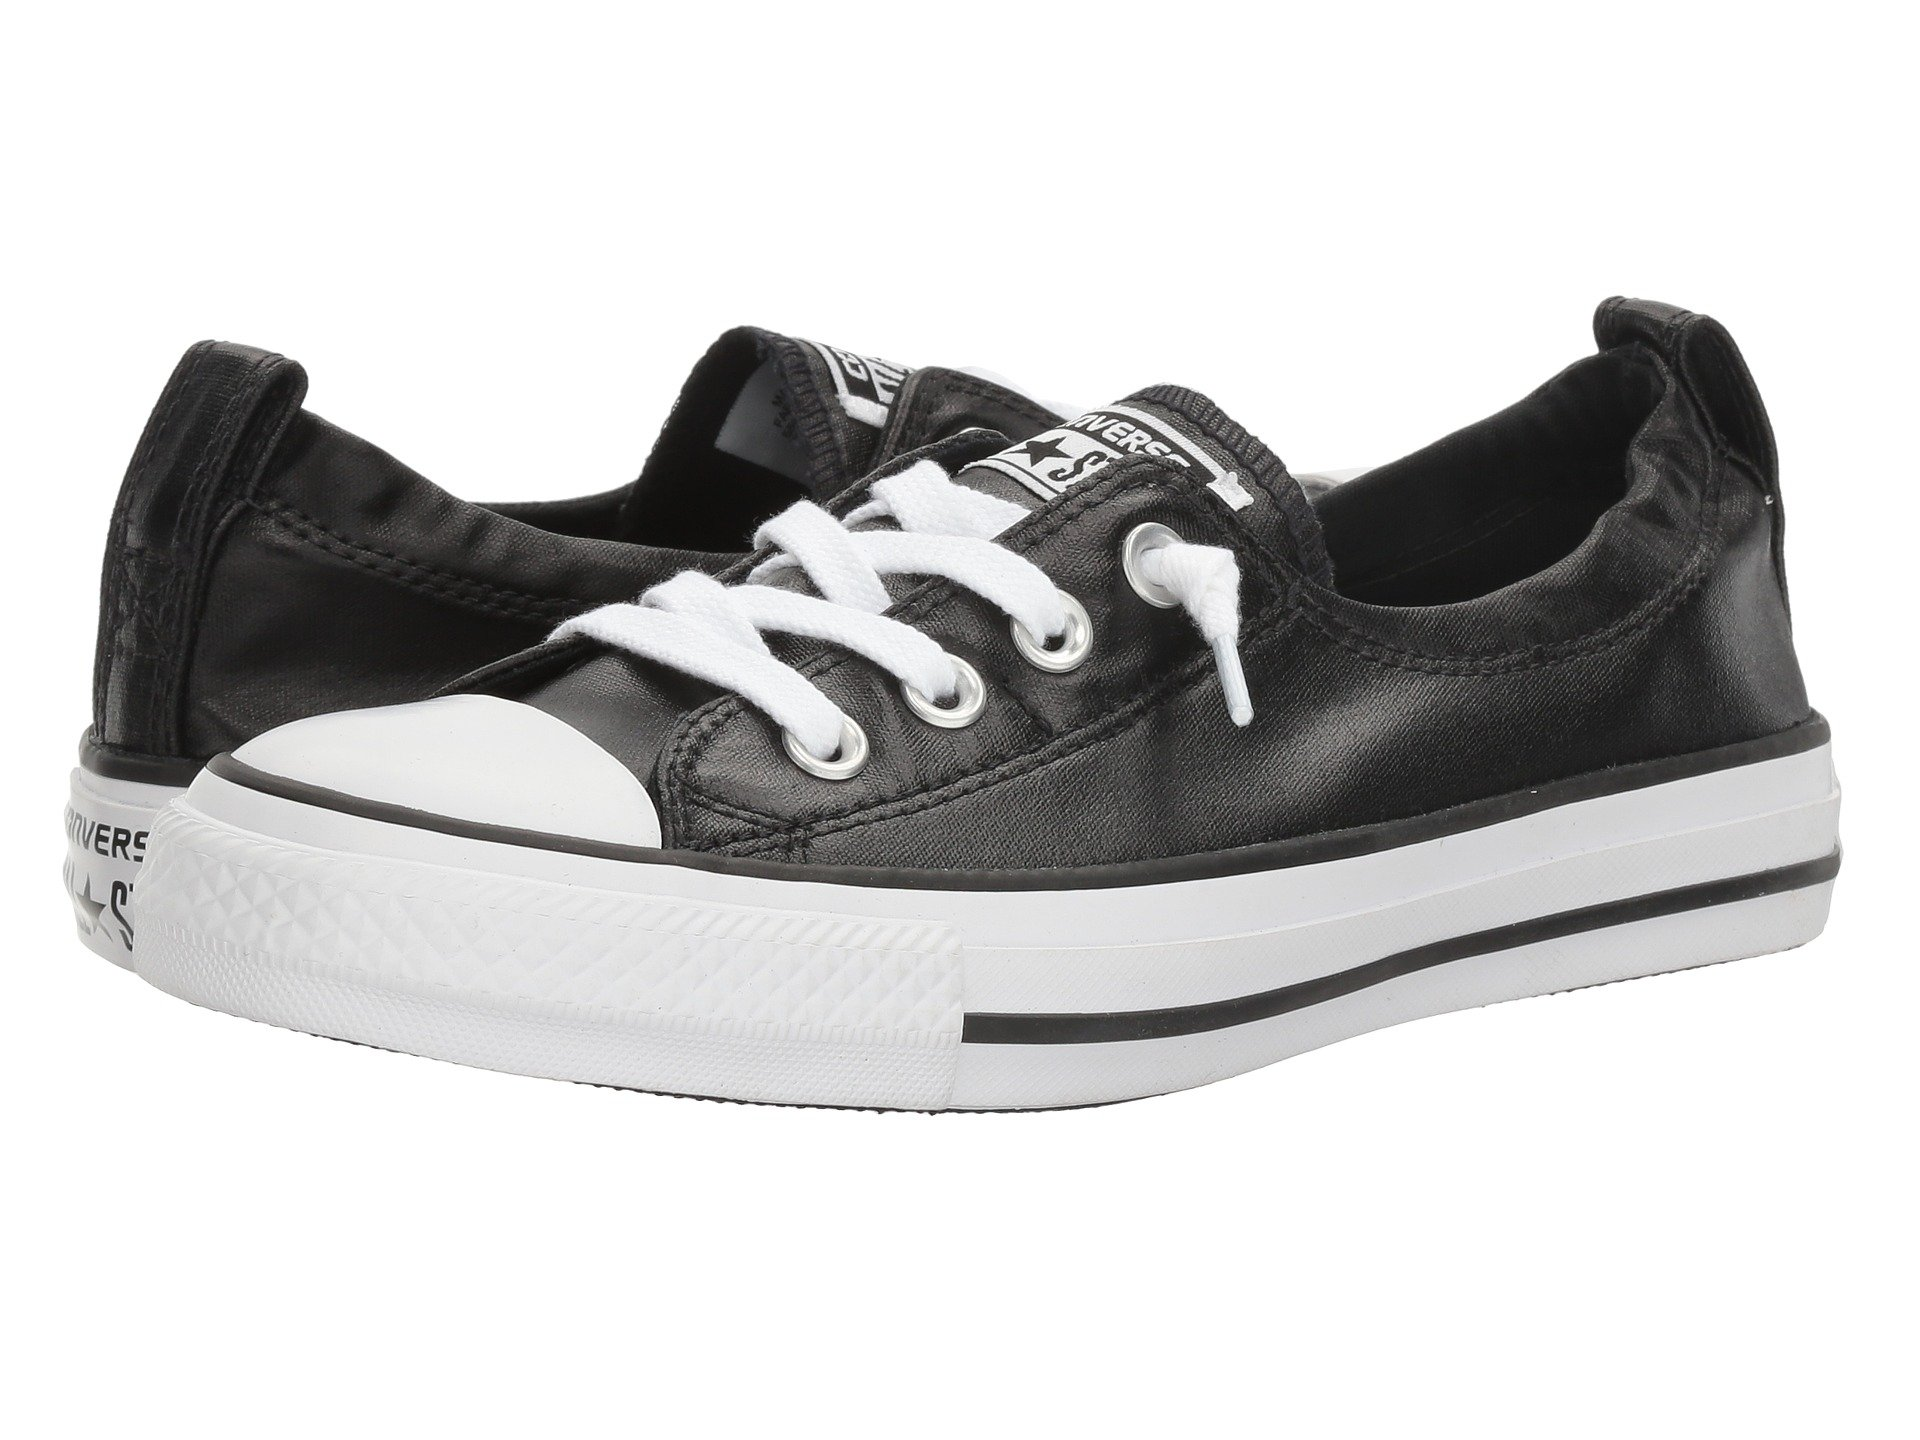 03e6c843b36f Galleon - Converse Chuck Taylor All Star Shoreline Black White Black Lace-Up  Sneaker - 8 B(M) US